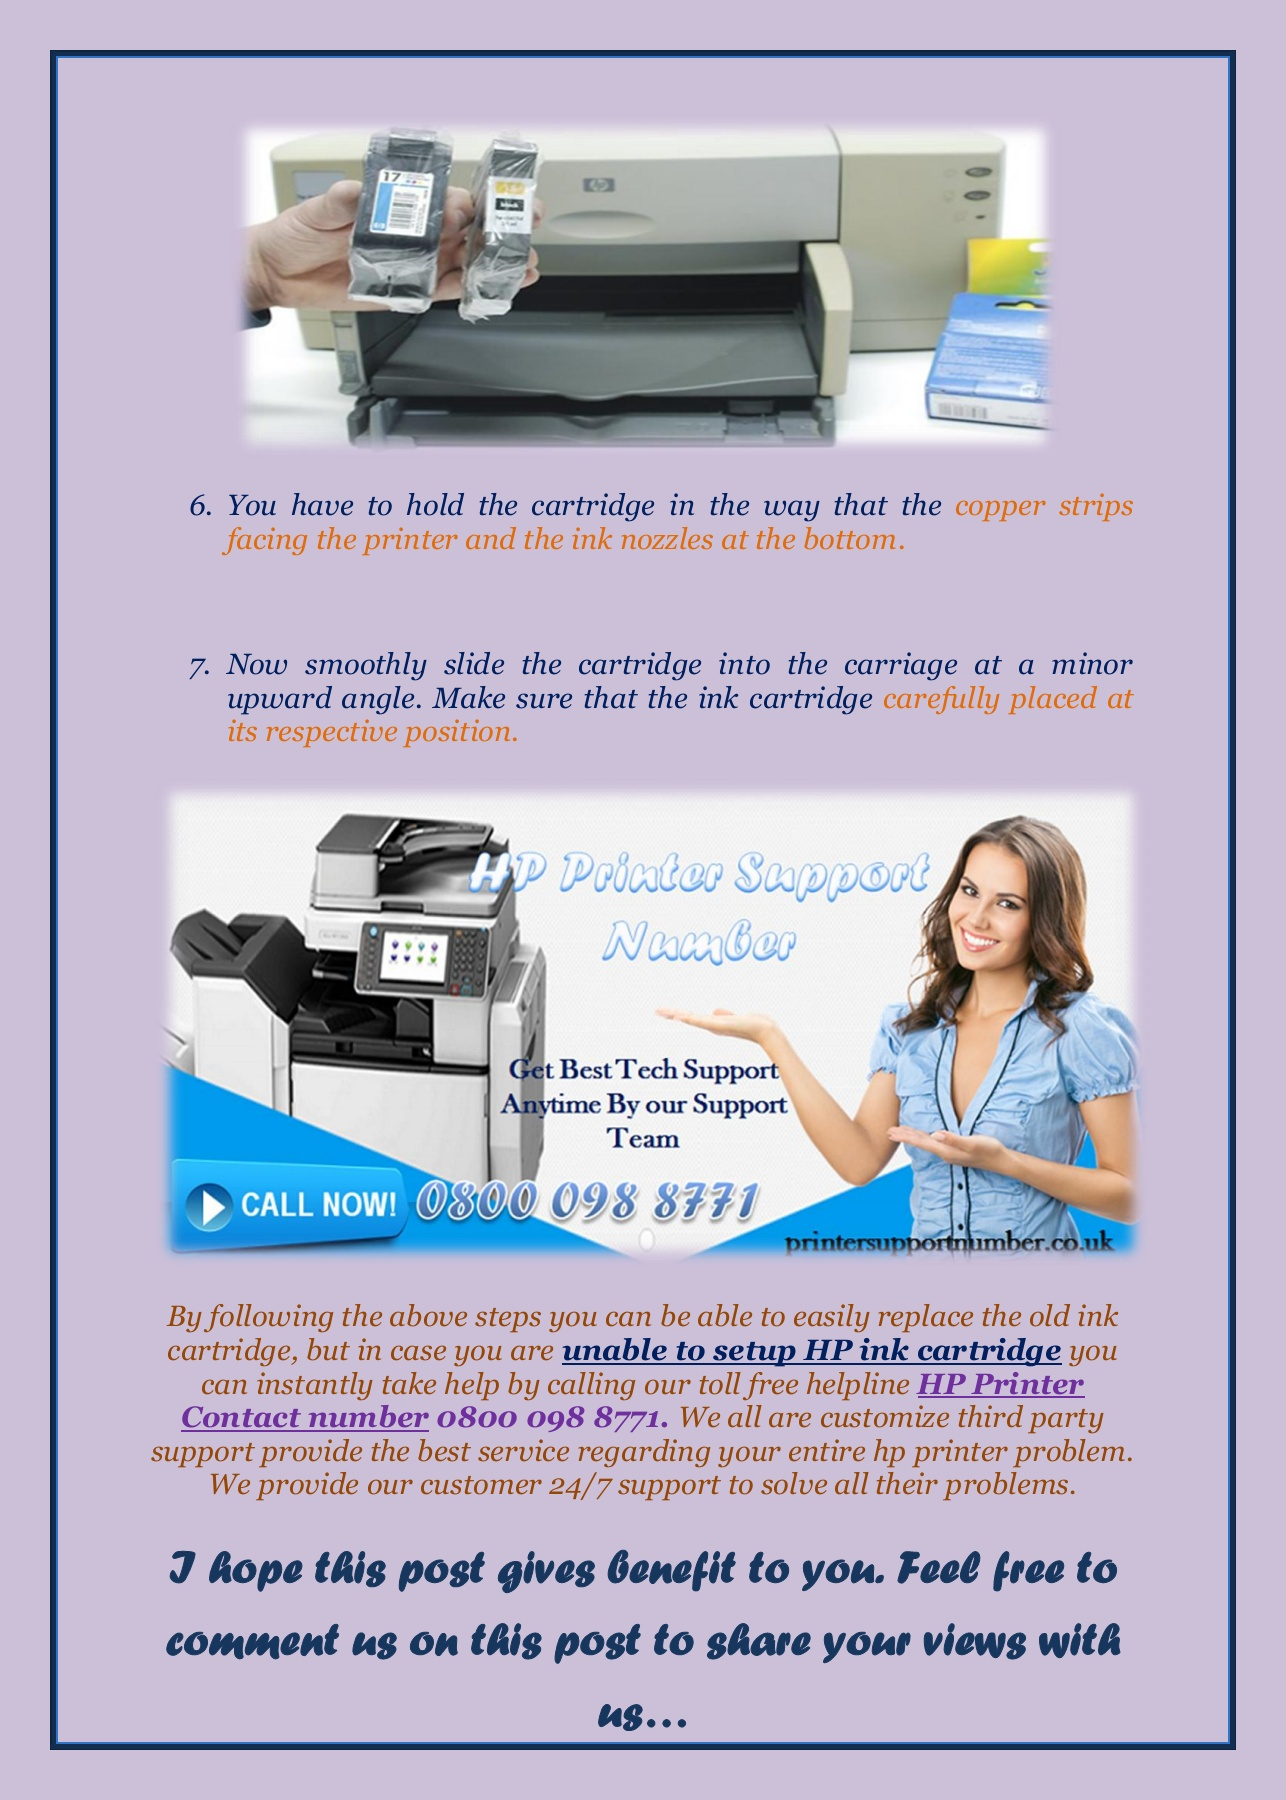 Methods to Replace Old Ink Cartridge Pages 1 - 3 - Text Version